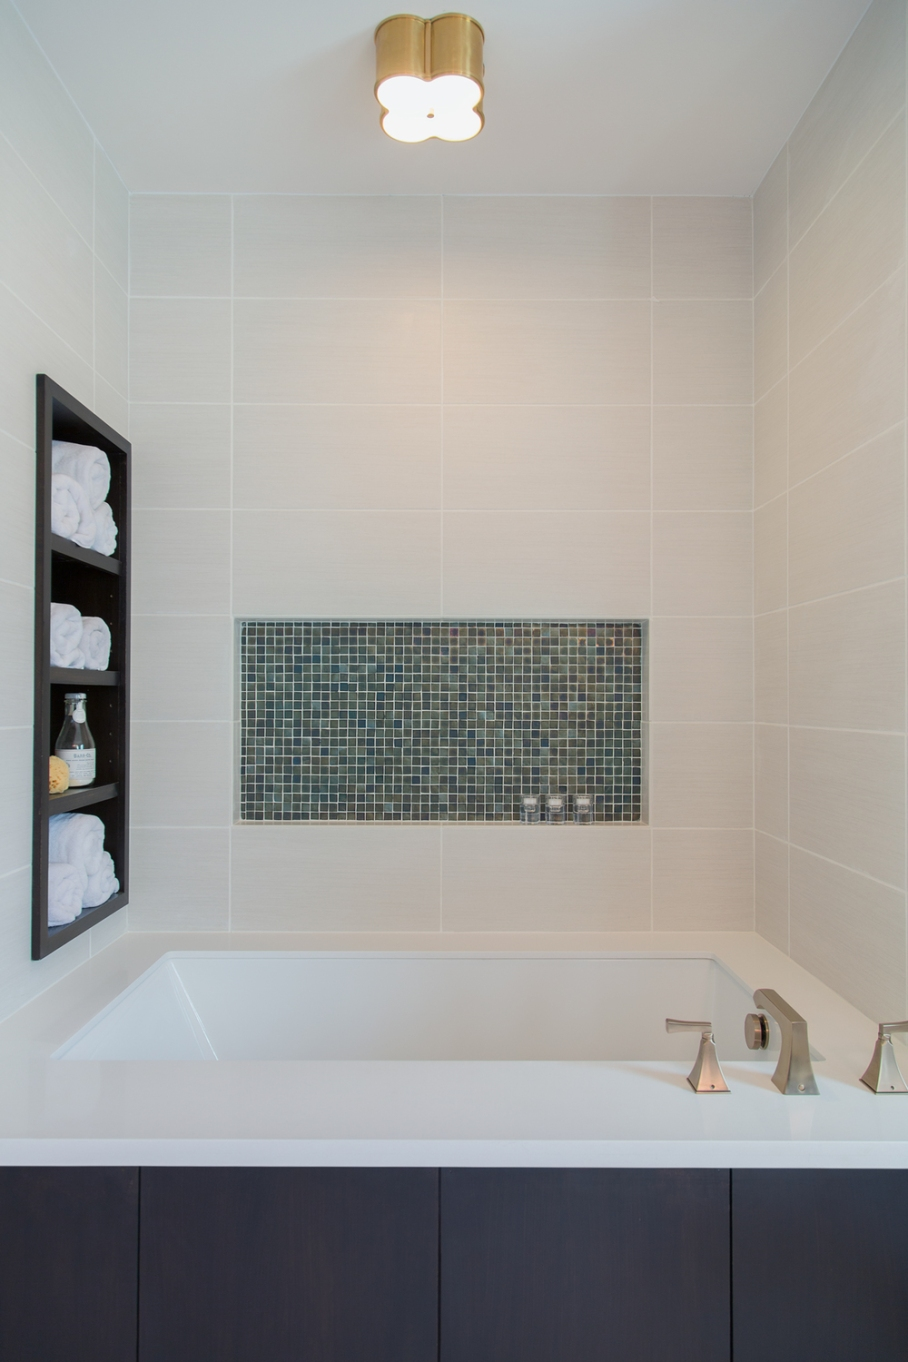 SEE THE FULL REMODEL: Before & After: A Master Bathroom Remodel Surprises Everyone With Unexpected Results | Photographer: Tori Aston